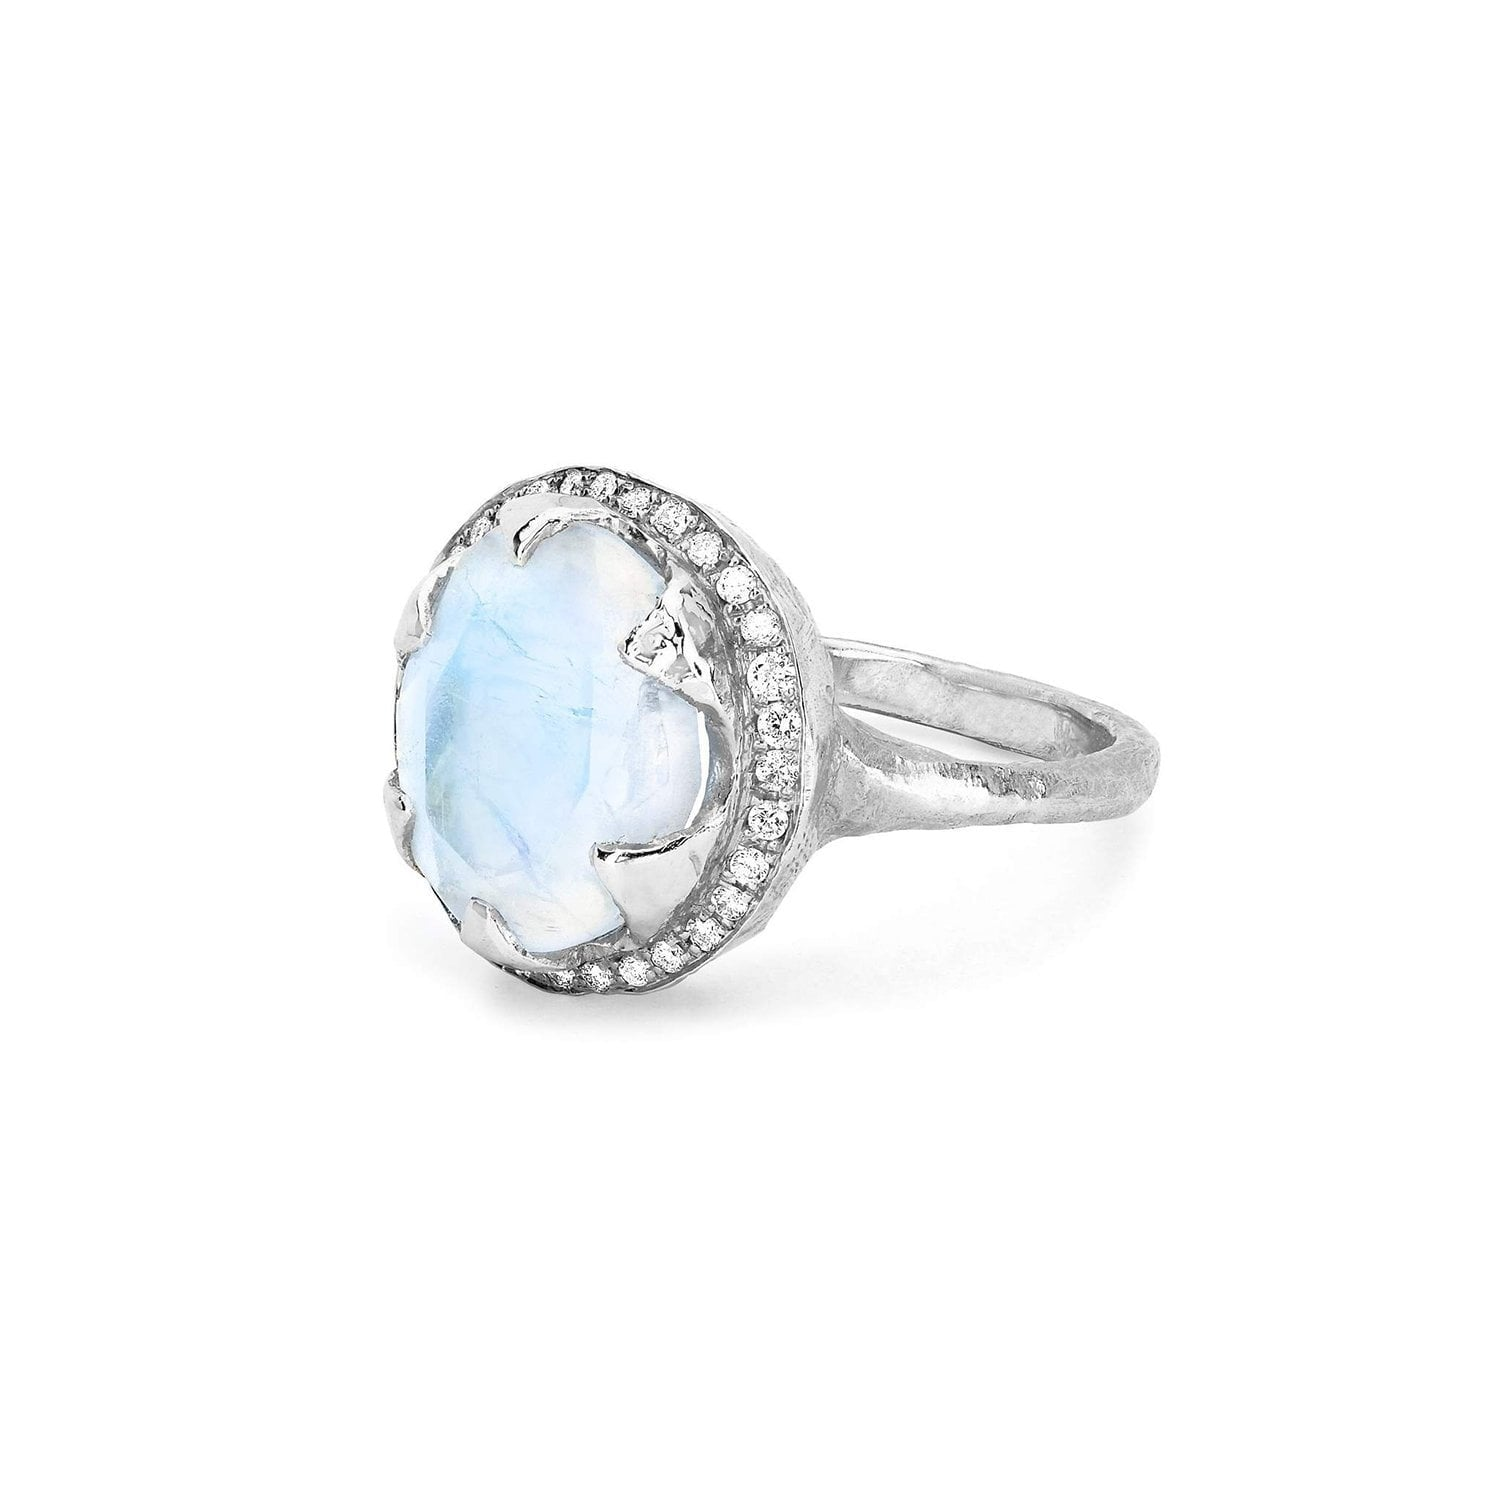 Queen Oval Moonstone Ring with Full Pavé Diamond Halo